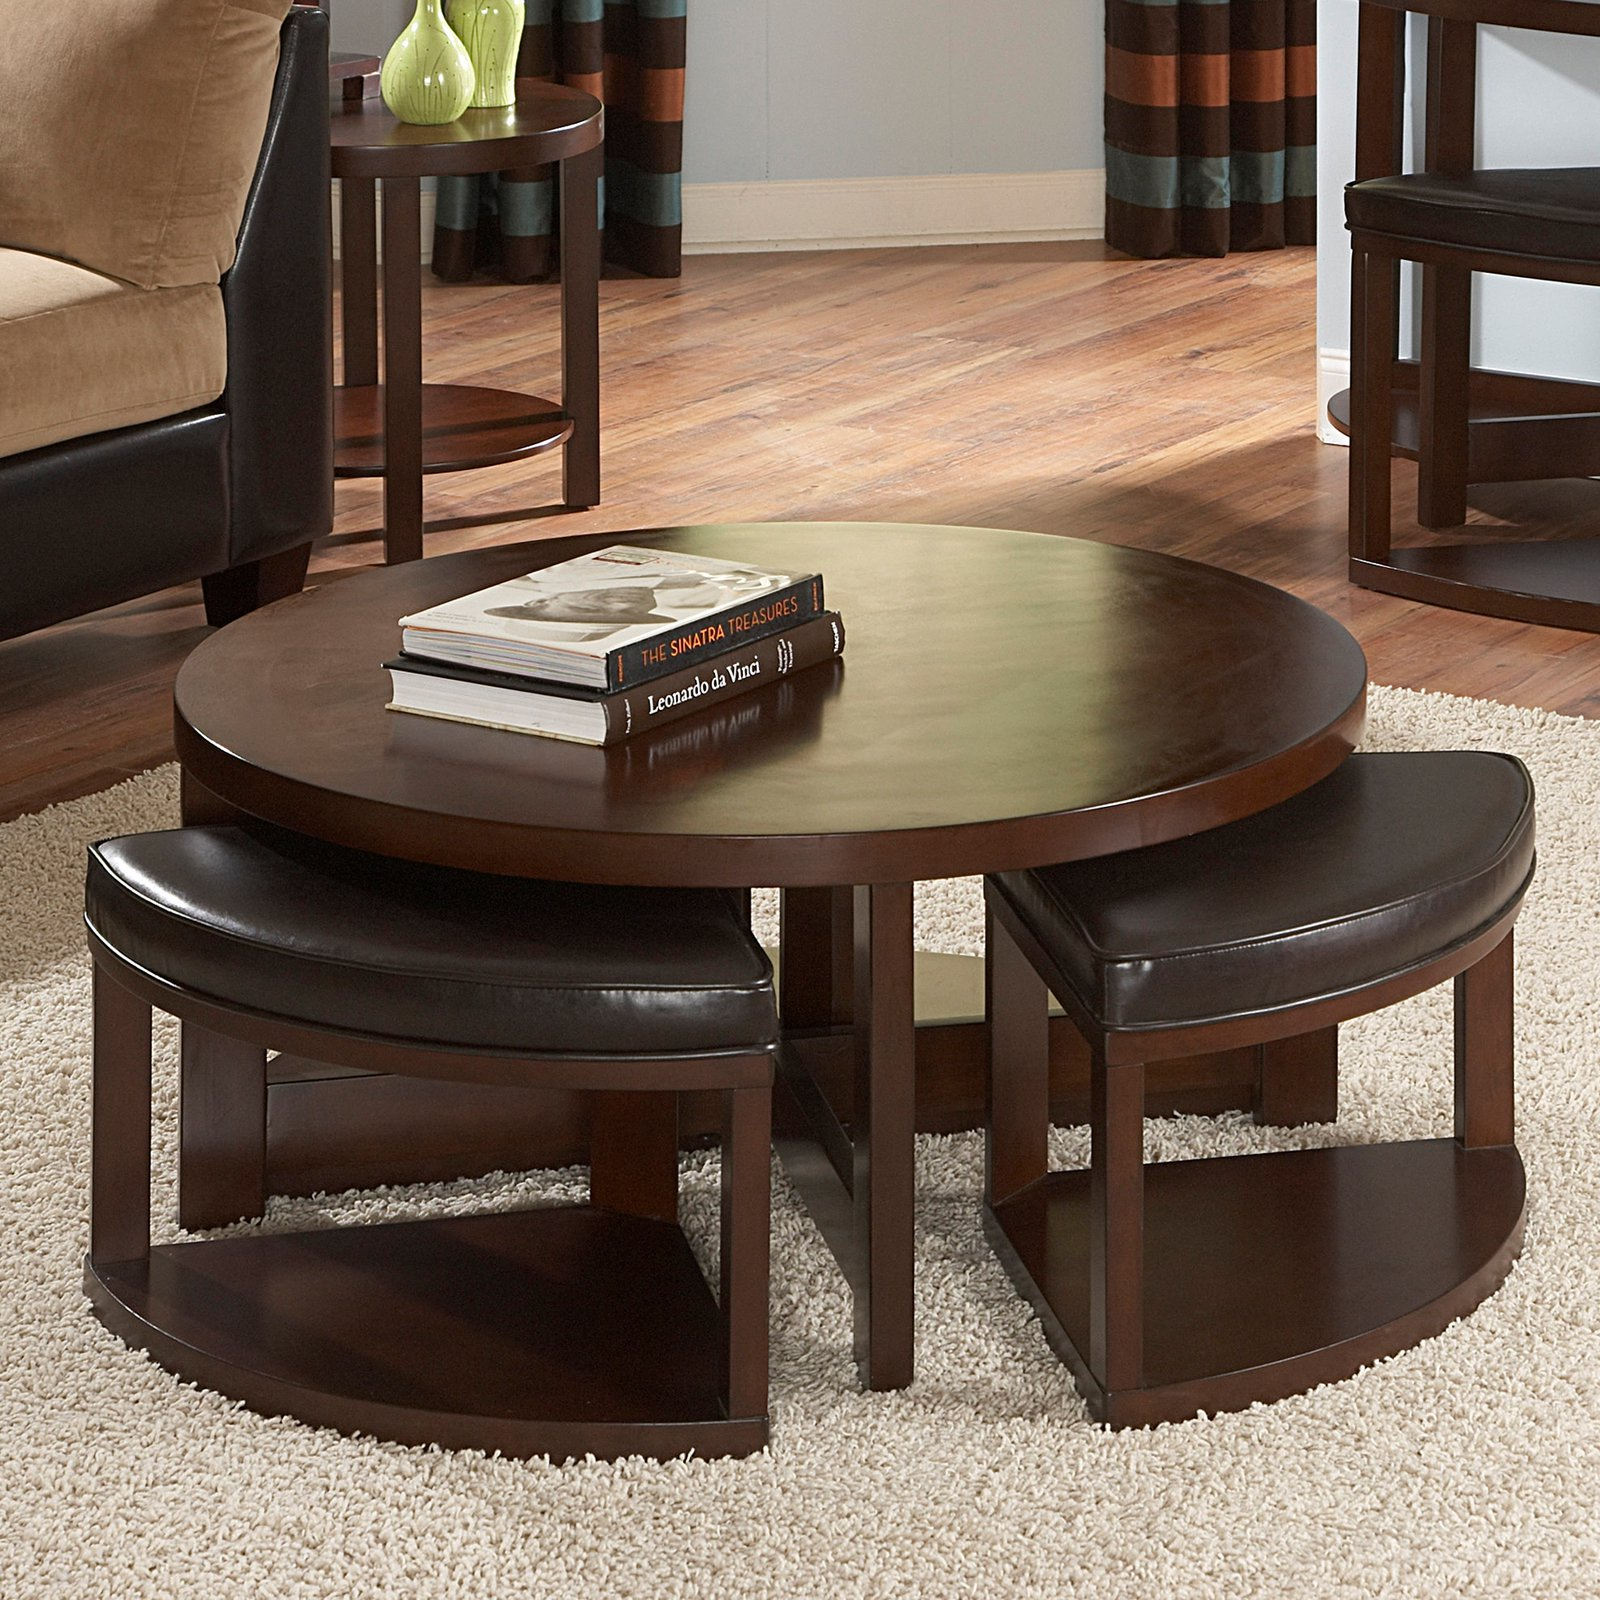 Weston Home Brussel II Round Brown Cherry Wood Coffee Table With 4 Ottomans